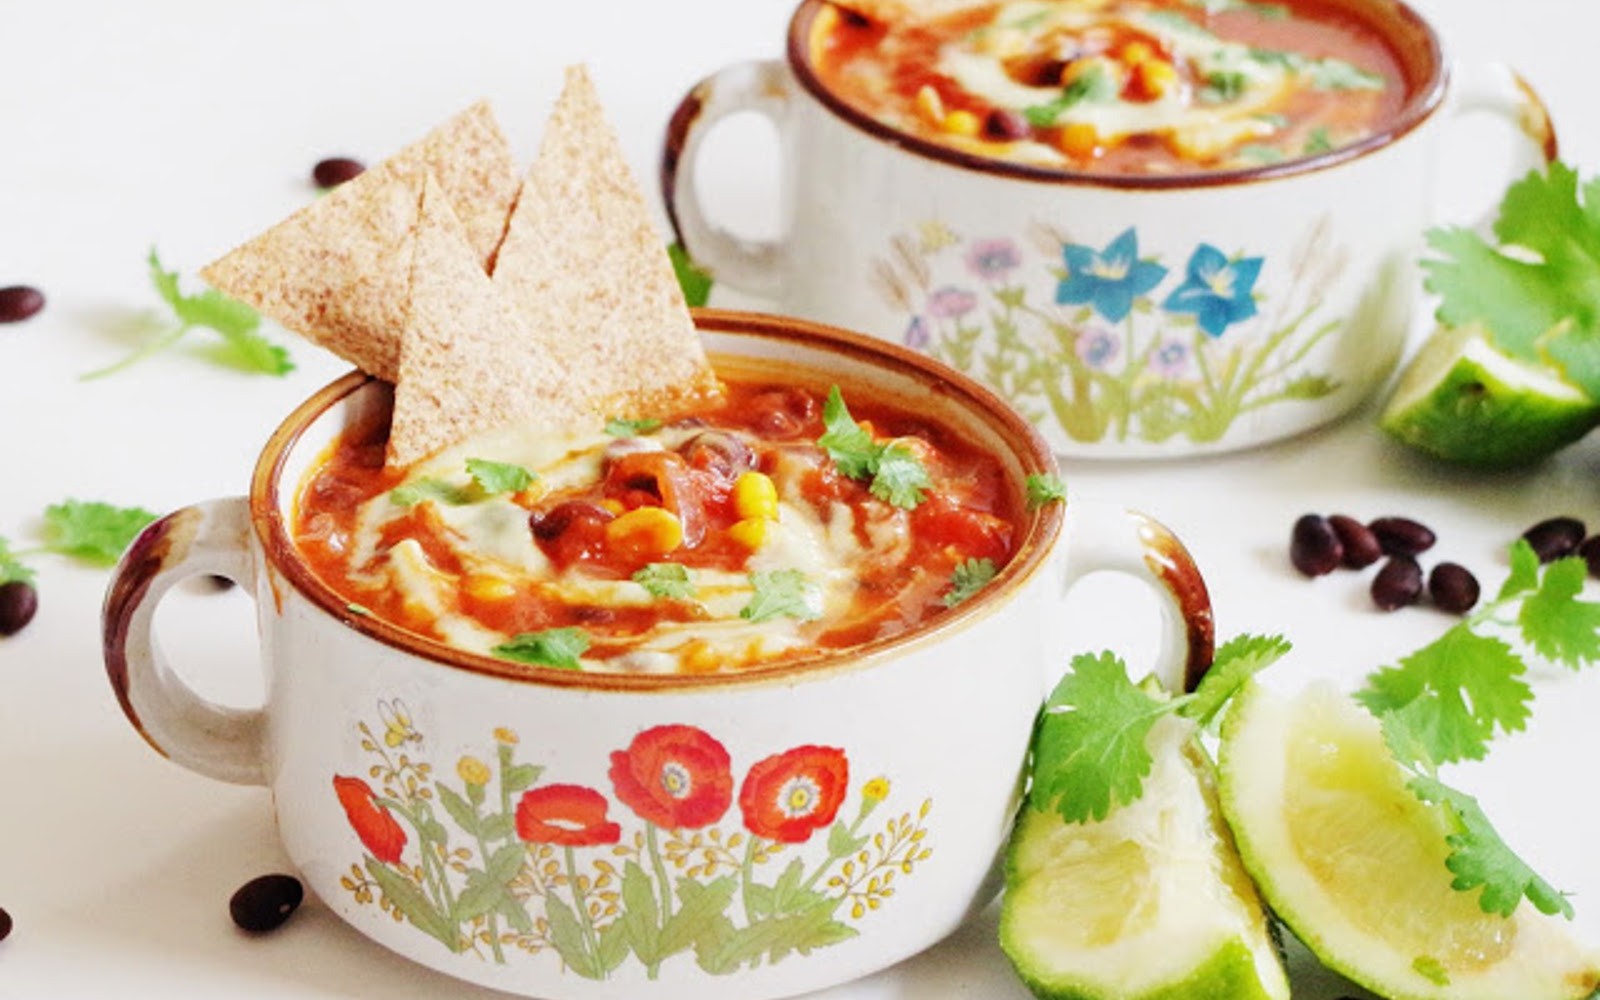 Vegan Mexican Black Bean Soup With Sweet Corn, Tortilla Chips, and Avocado Cream